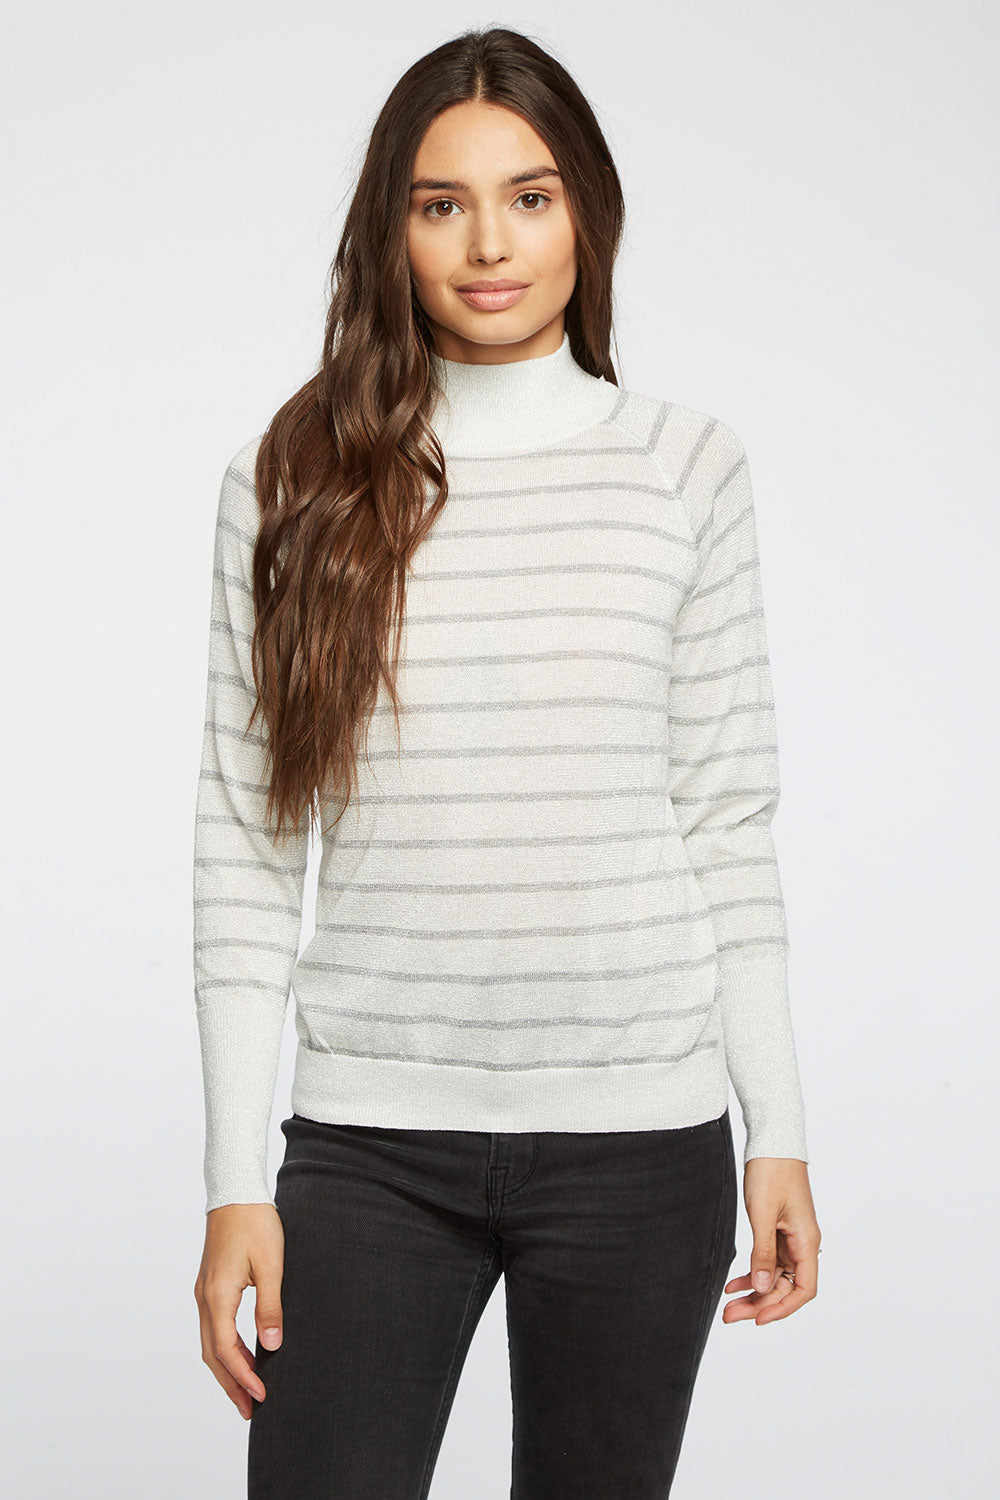 Striped Lurex Turtleneck Raglan Shirttail Sweater WOMENS chaserbrand4.myshopify.com